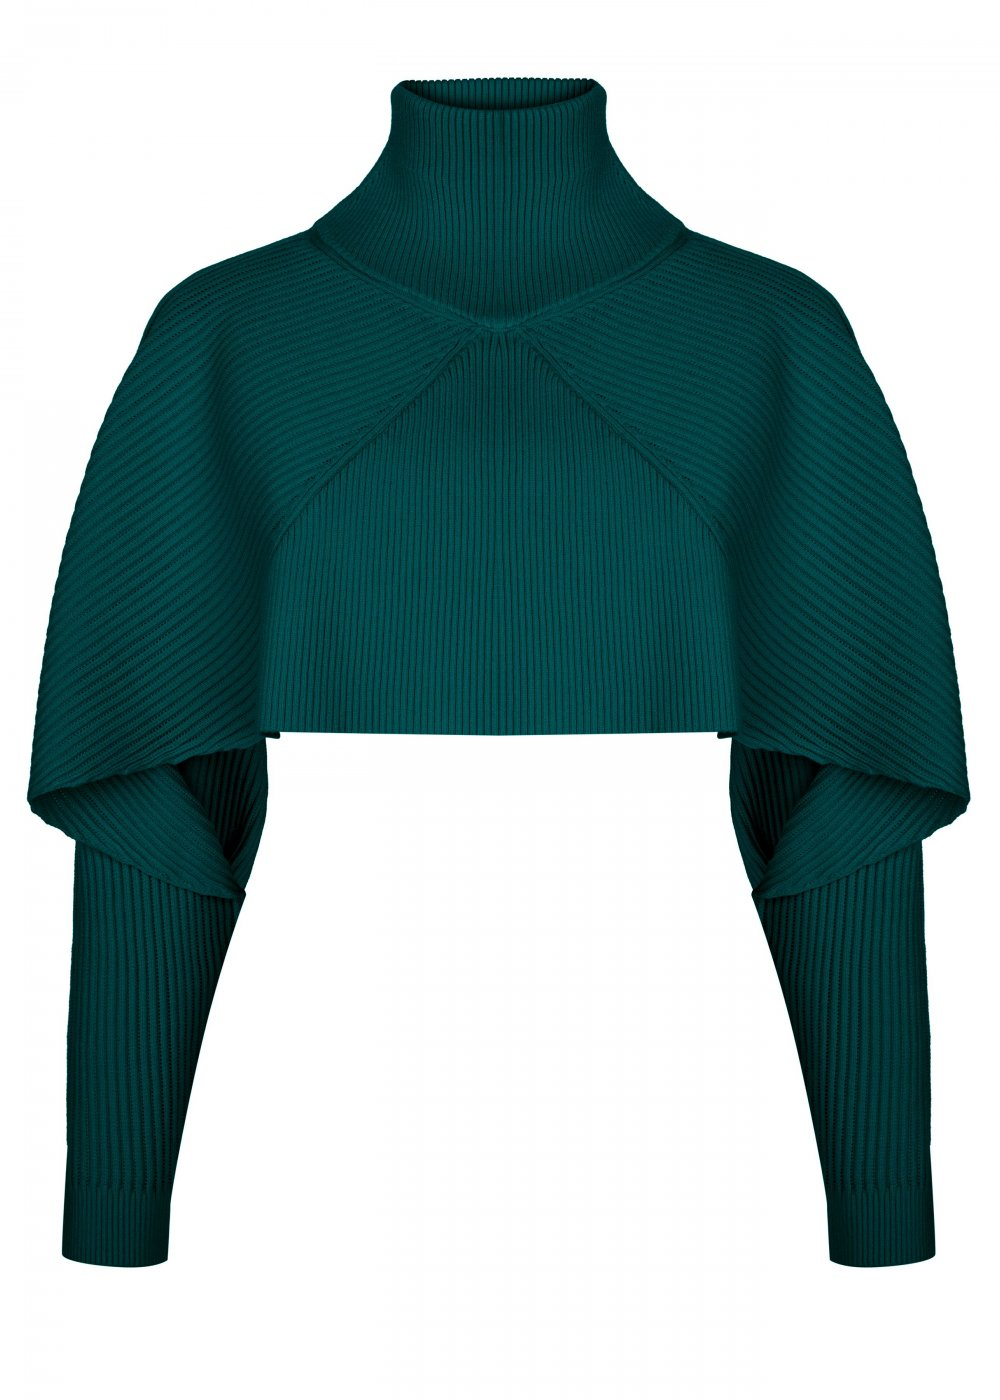 Long Sleeve Turtle Neck Ivy Green Knit Top